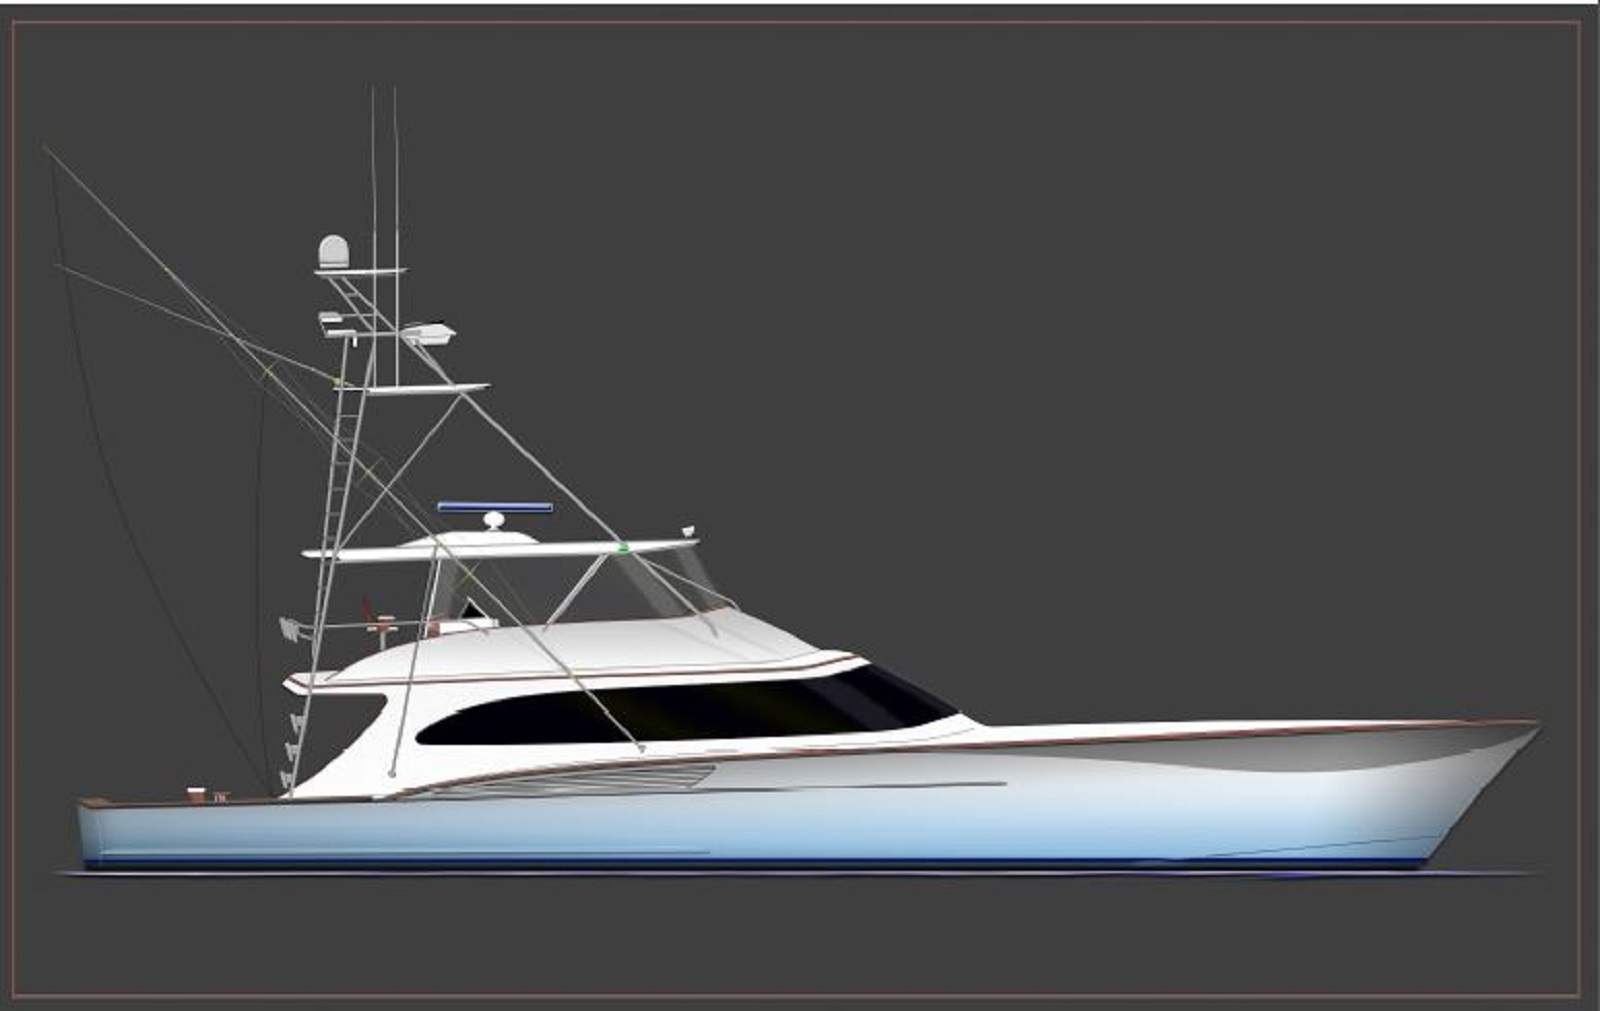 Hull # 60 specs with detailed specification and builder summary